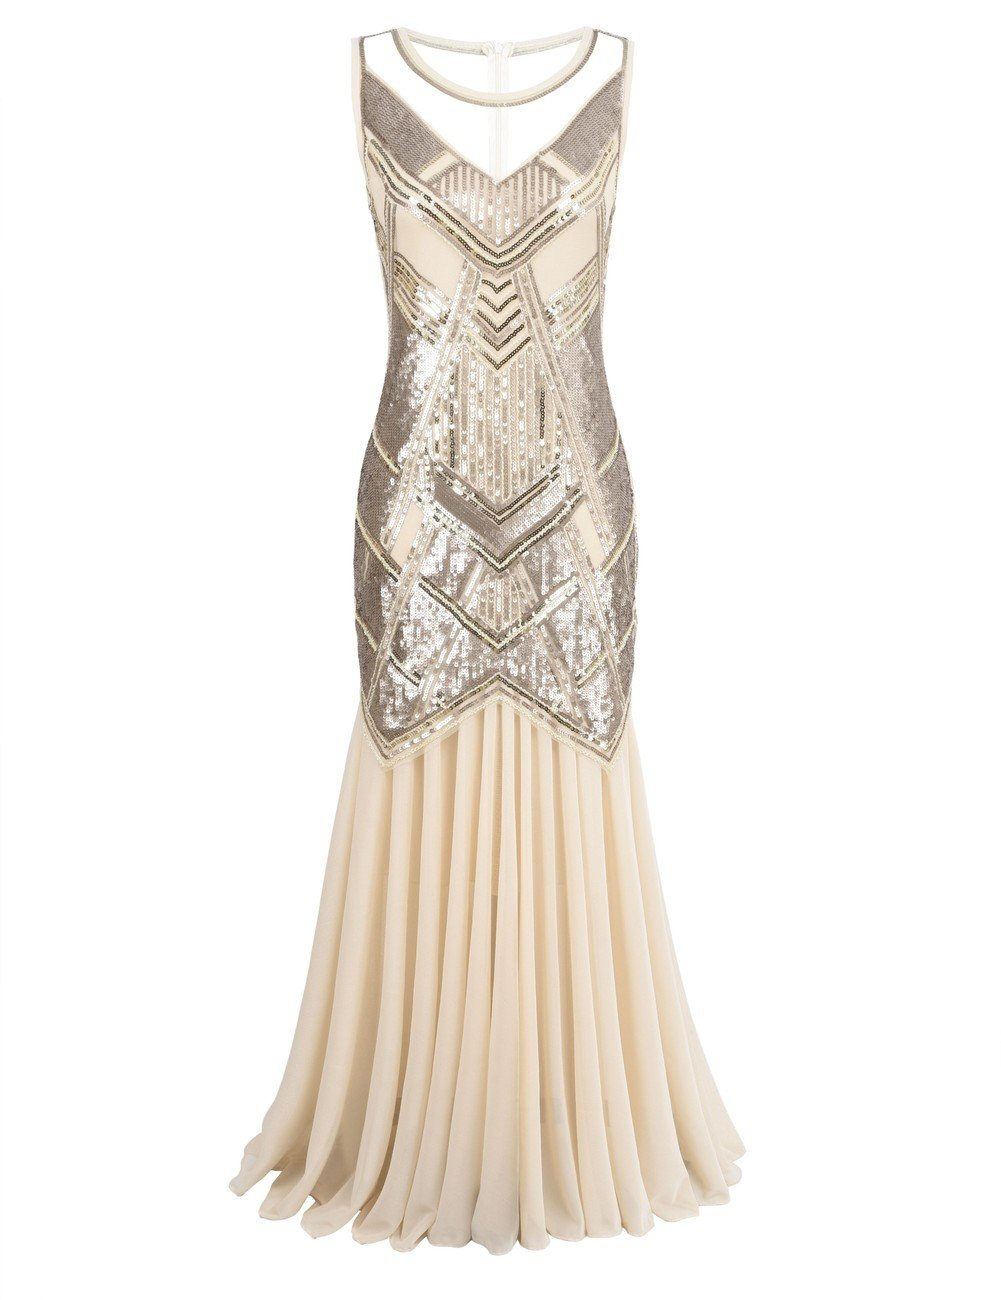 kayamiya Womens Vintage 1920s Beaded Sequin Maxi Long Gatsby Flapper Prom Dress S Champagne Pink at Amazon Womens Clothing store: